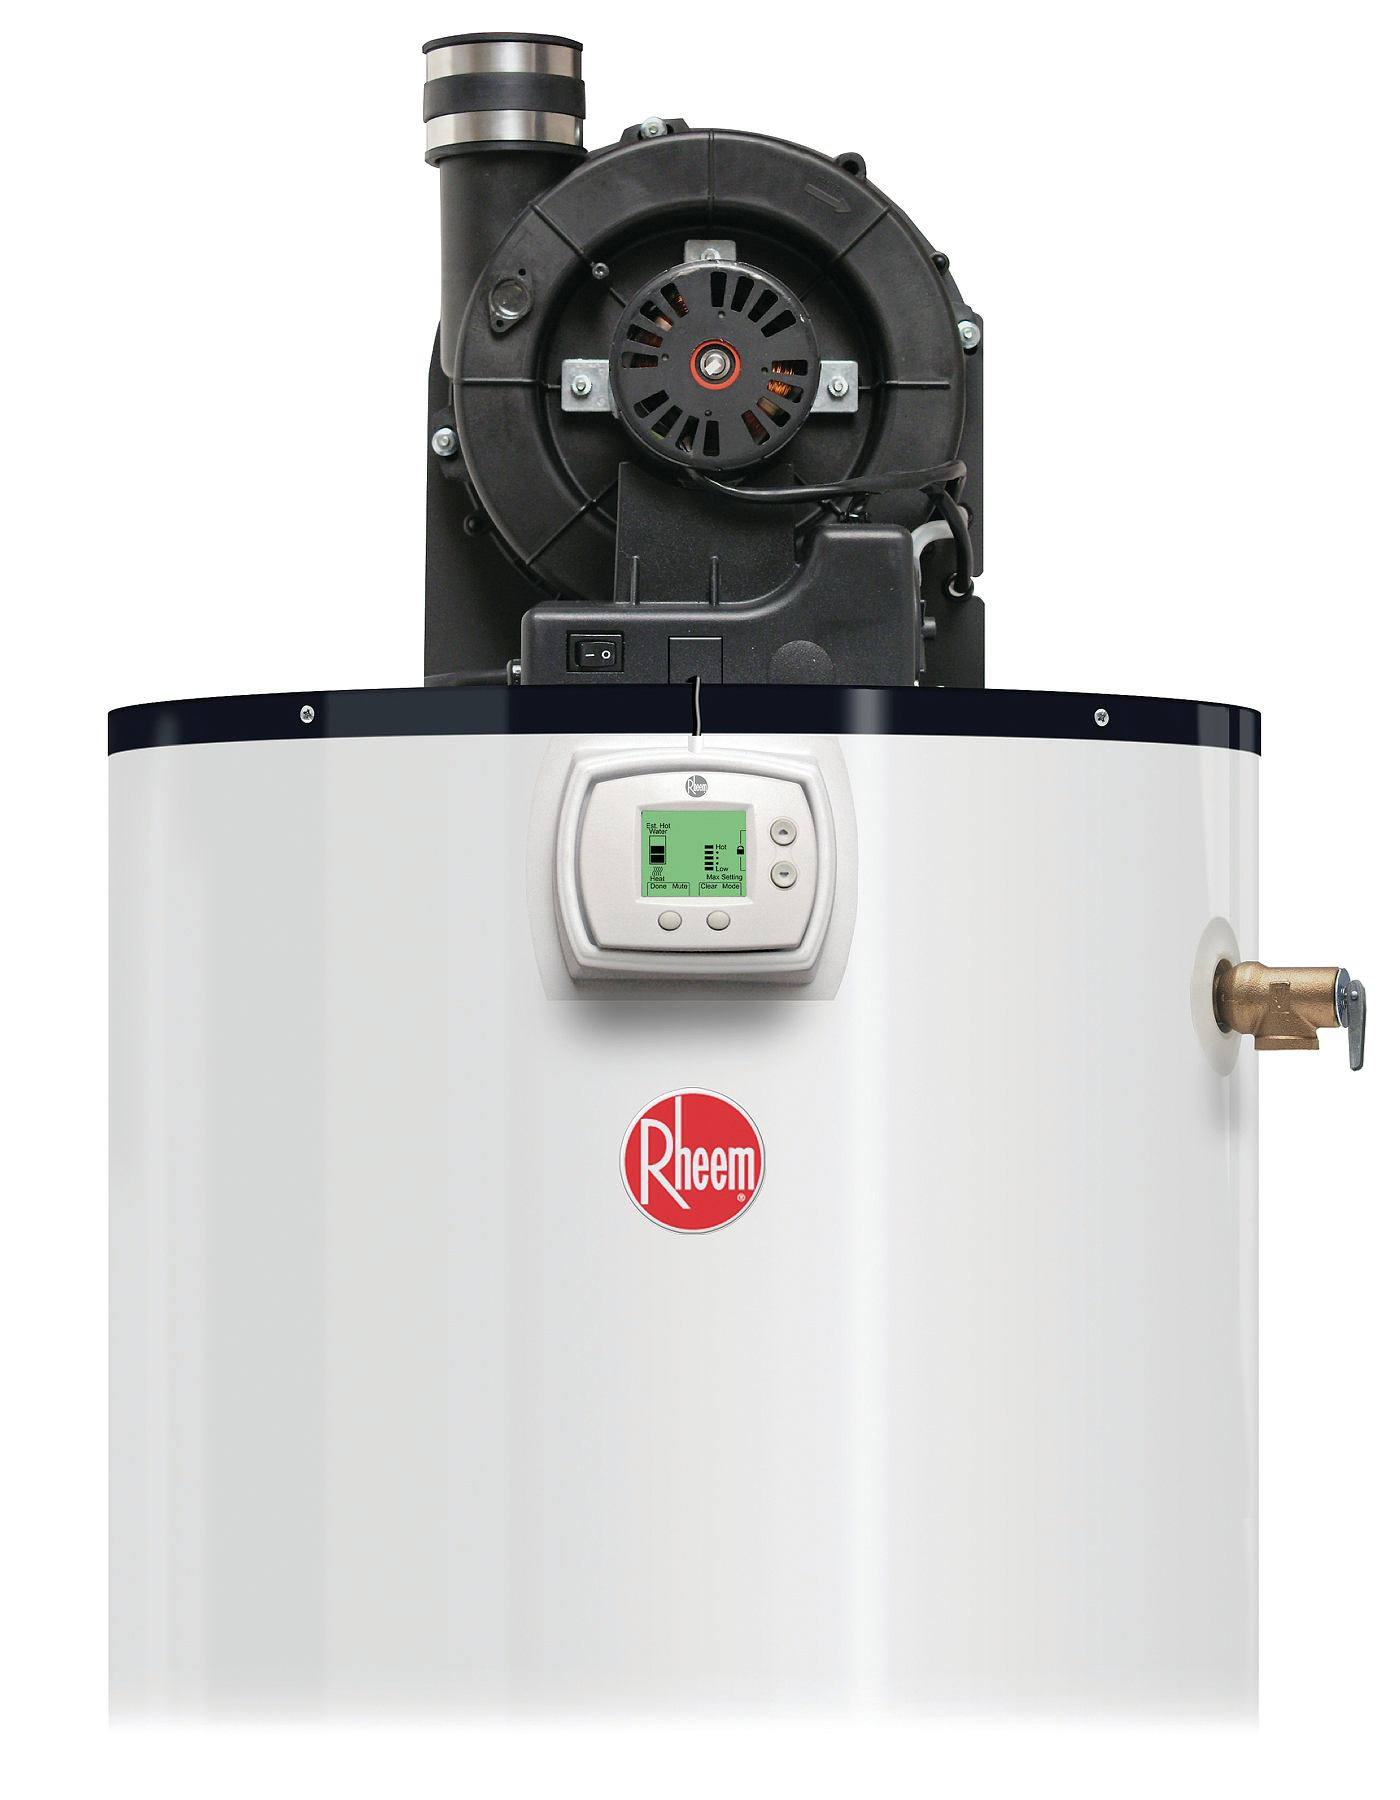 Rheem Power Vent Water Heater Lcd Display Builder